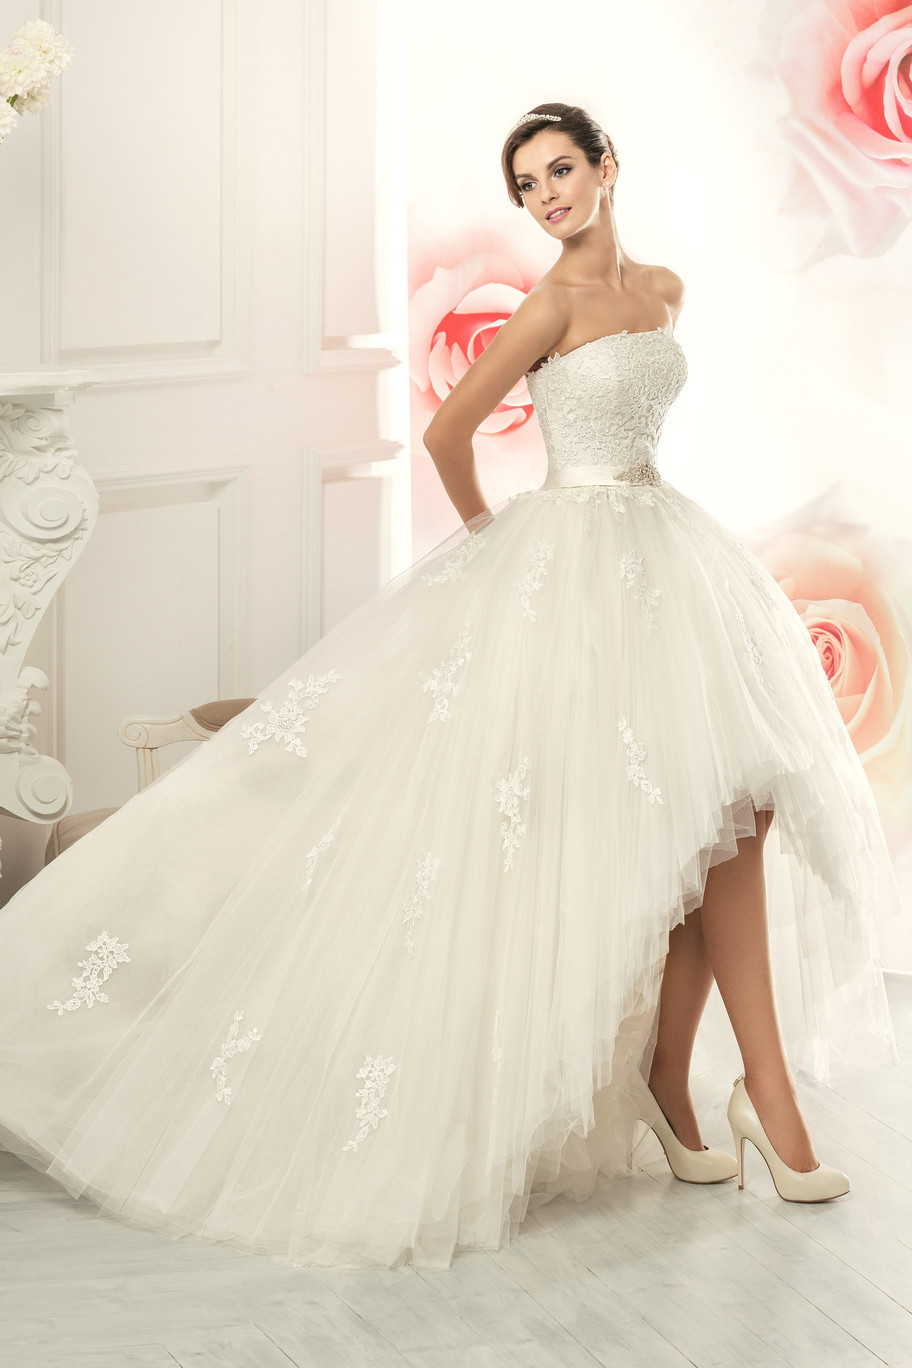 New Style Strapless Lace Appliques Front Short Long Back Wedding Dress 2015(China (Mainland))